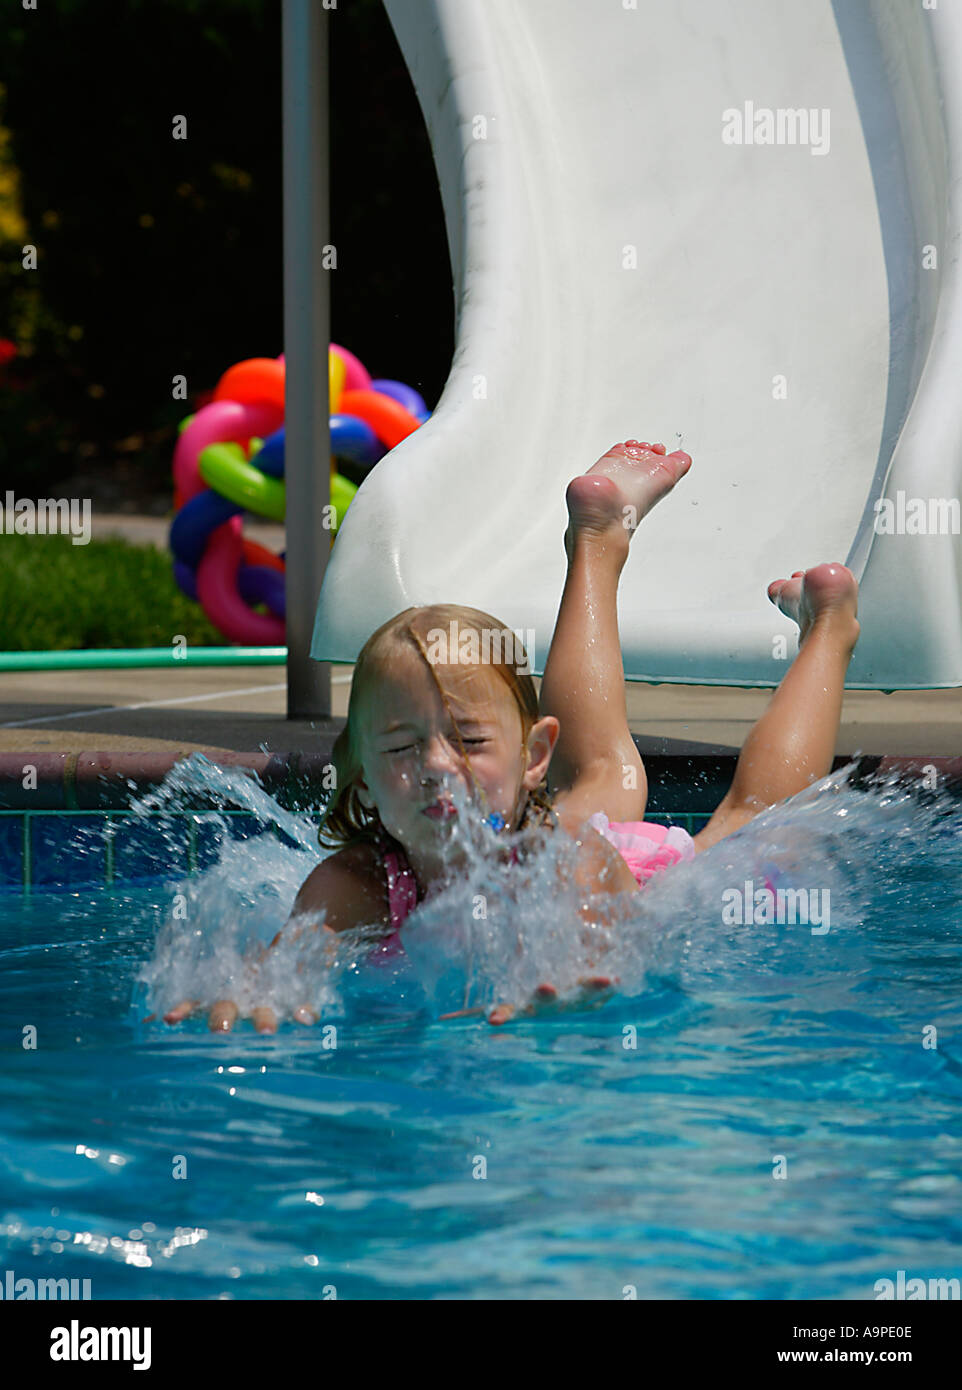 Child Sliding Into A Swimming Pool   Stock Image